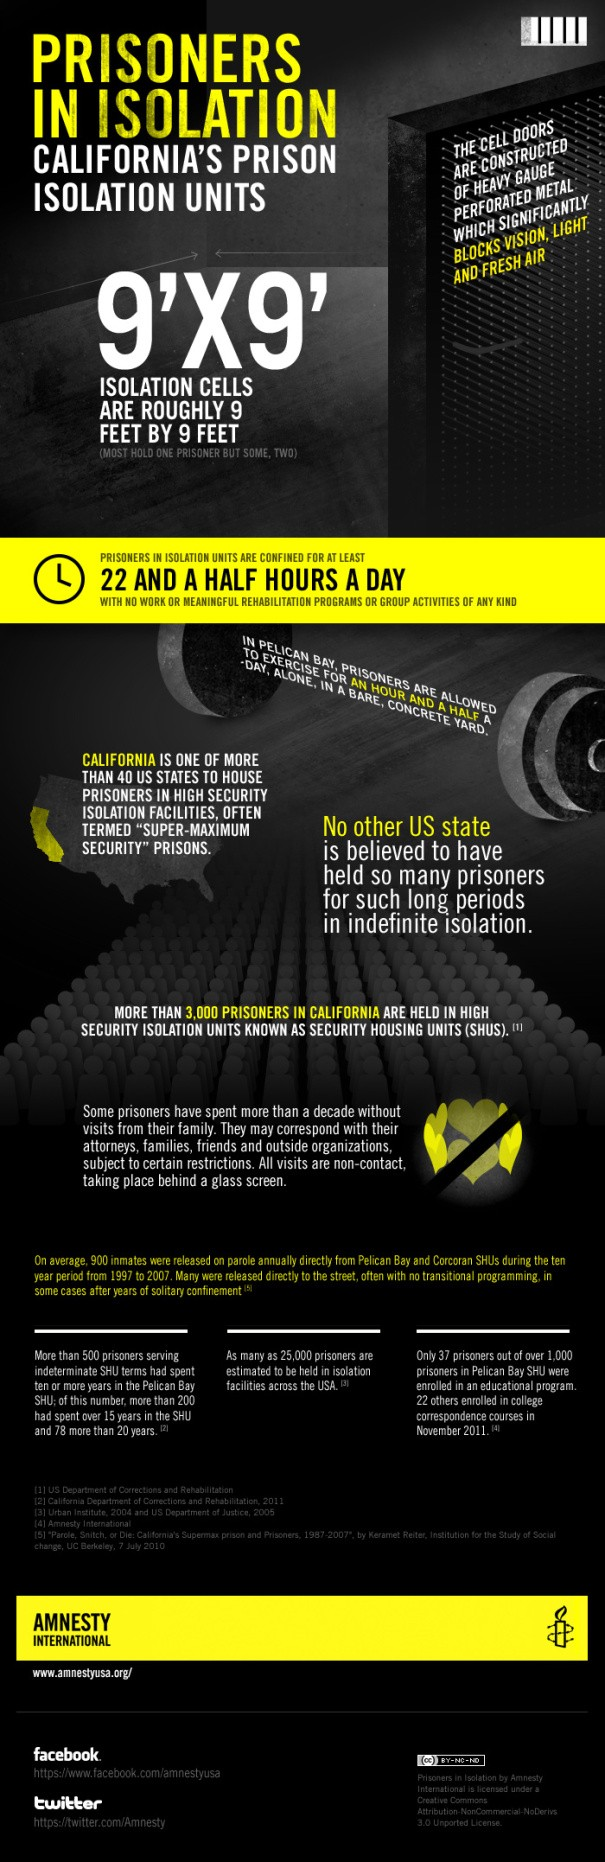 Prisoners in Isolation: California's Prison Isolation Units: Infographic on Security Housing Units (SHU), or solitary confinement units, in California State.